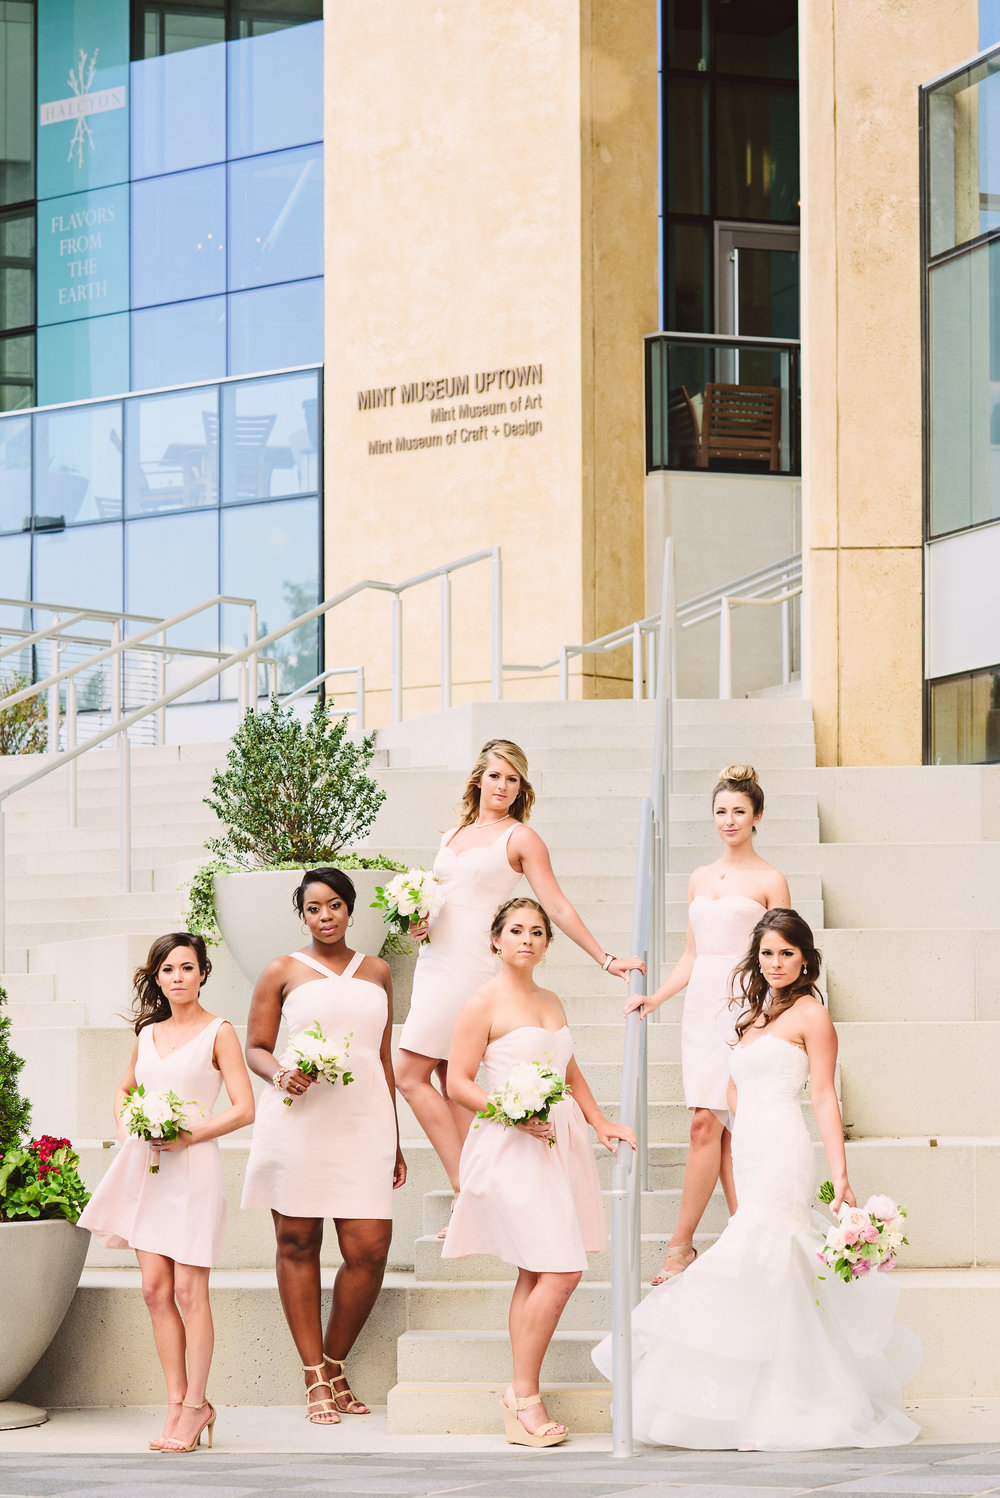 Bridal party style, Blush pink J Crew bridesmaid dresses, Monique Lhuillier lace wedding dress, Mint Museum Uptown wedding in Charlotte, North Carolina by The Graceful Host